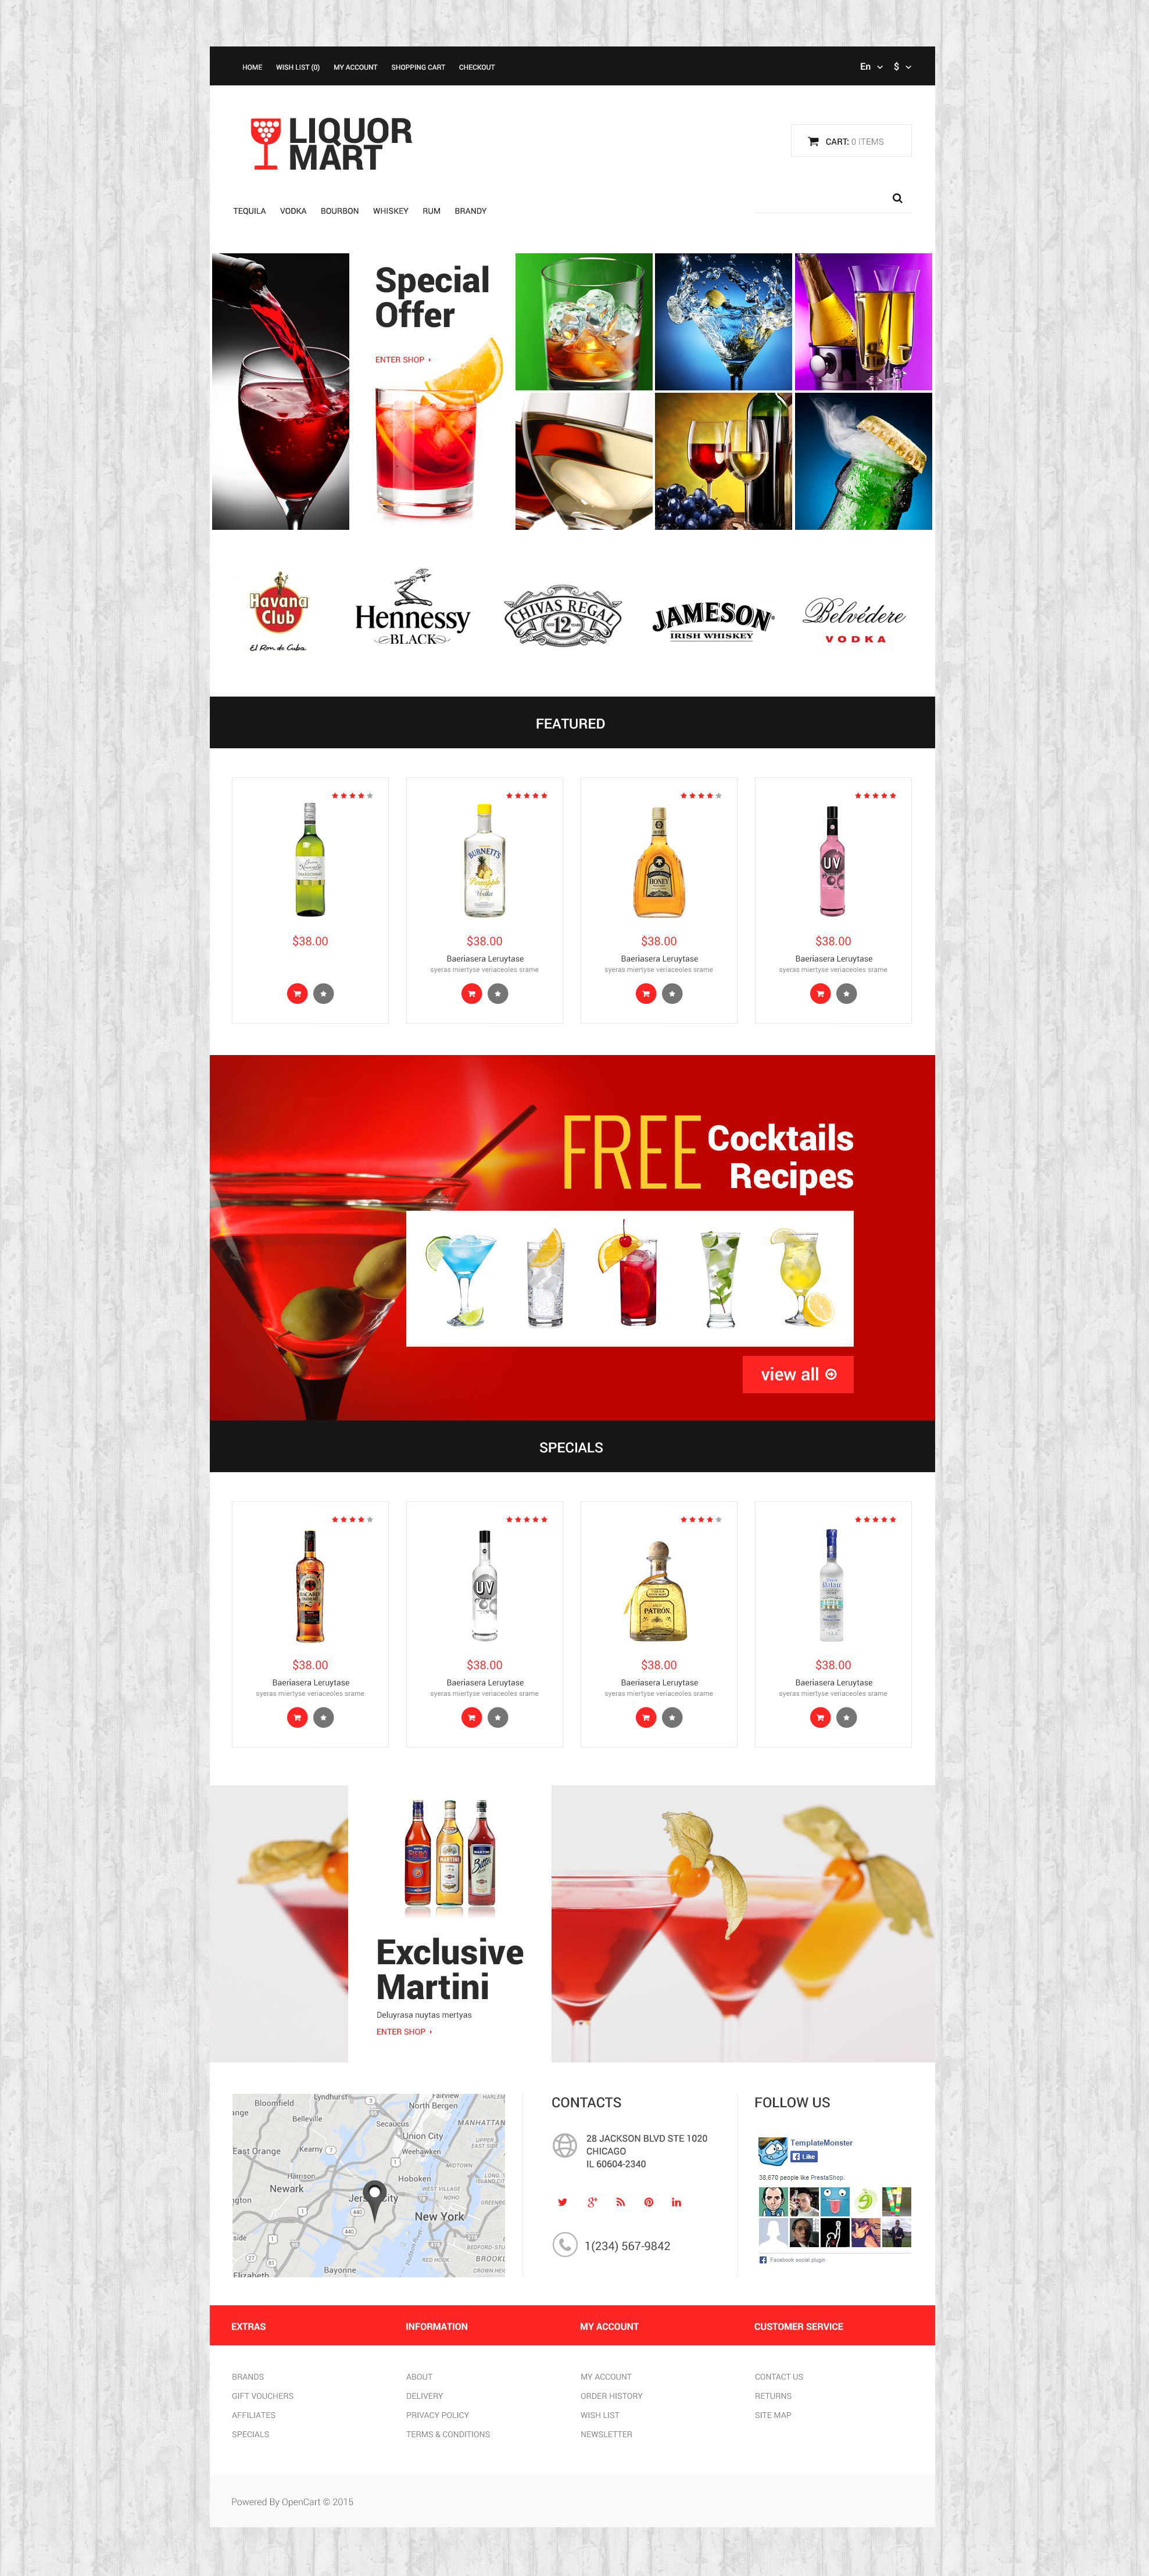 The Liquor Mart OpenCart Design 53816, one of the best OpenCart templates of its kind (food & drink, most popular), also known as liquor mart OpenCart template, alcohololic OpenCart template, alcoholic OpenCart template, beverage store OpenCart template, scoth OpenCart template, whisky OpenCart template, rum OpenCart template, cognac OpenCart template, armagnac OpenCart template, gin OpenCart template, jenever OpenCart template, absinthe OpenCart template, vodka OpenCart template, tequila OpenCart template, glenfiddich OpenCart template, absolut OpenCart template, vanilia OpenCart template, ancnoc OpenCart template, balvenie OpenCart template, shopping cart and related with liquor mart, alcohololic, alcoholic, beverage store, scoth, whisky, rum, cognac, armagnac, gin, jenever, absinthe, vodka, tequila, glenfiddich, absolut, vanilia, ancnoc, balvenie, shopping cart, etc.